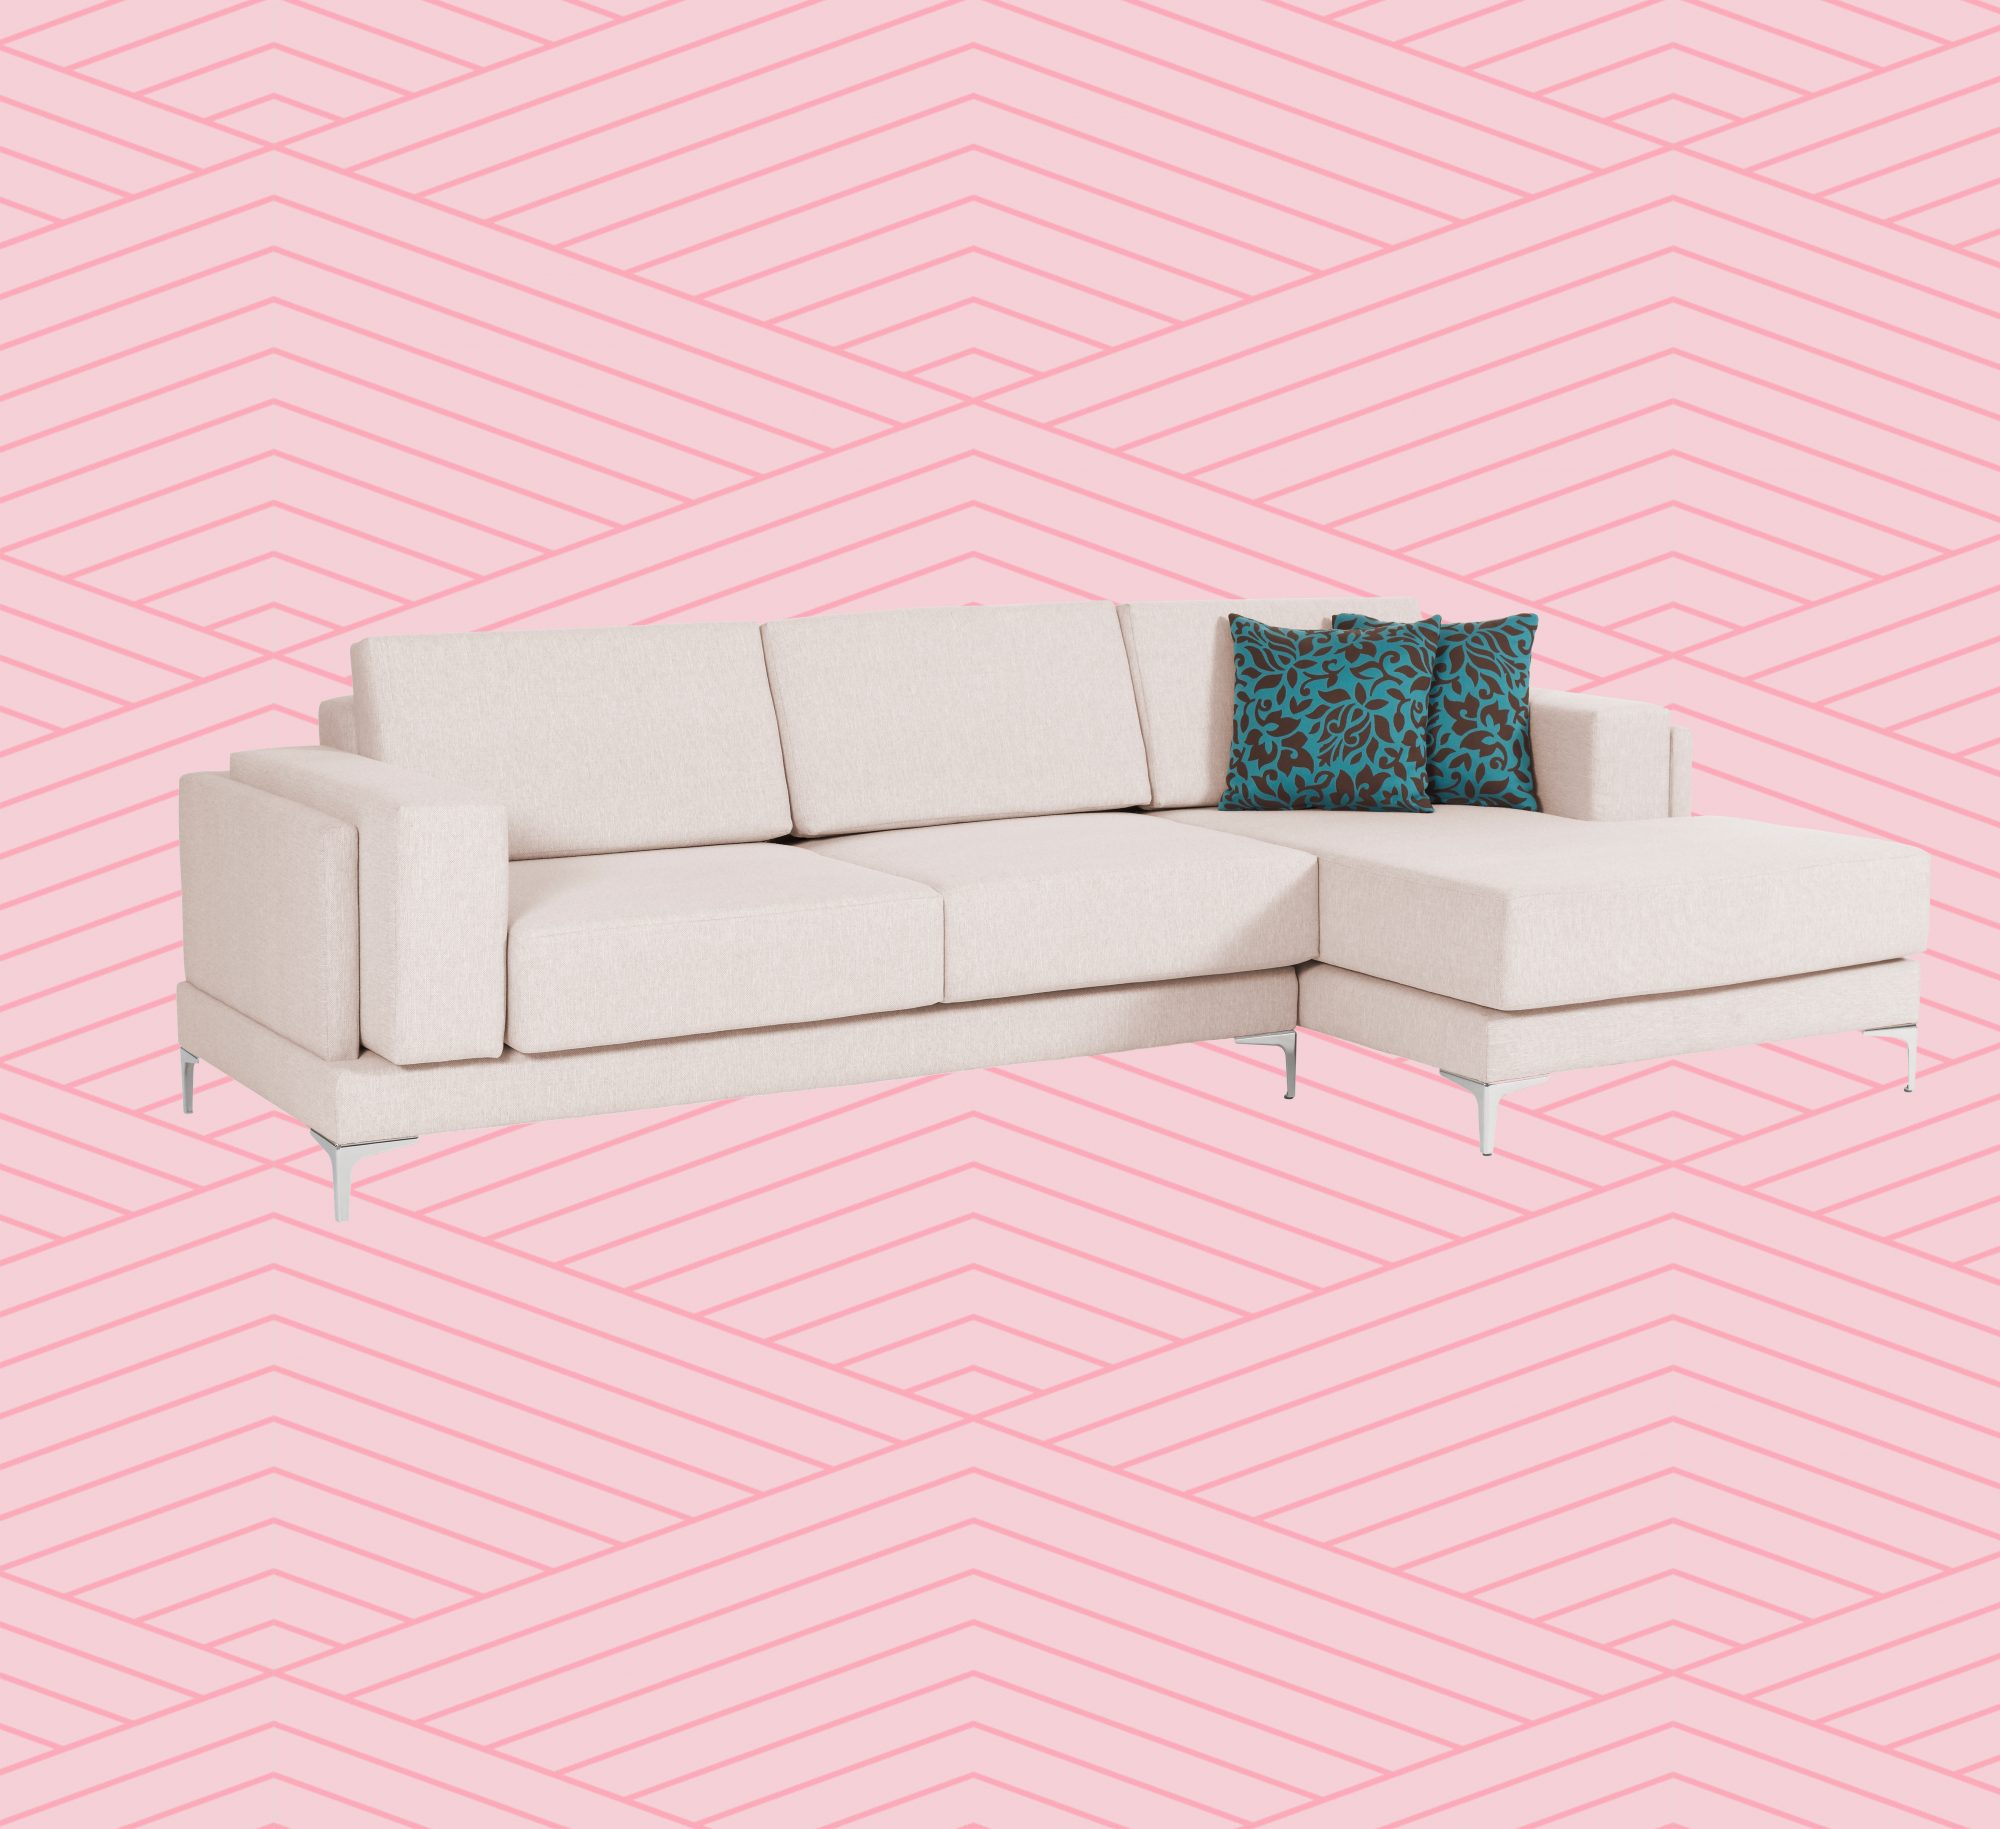 Couch with accent throw pillows